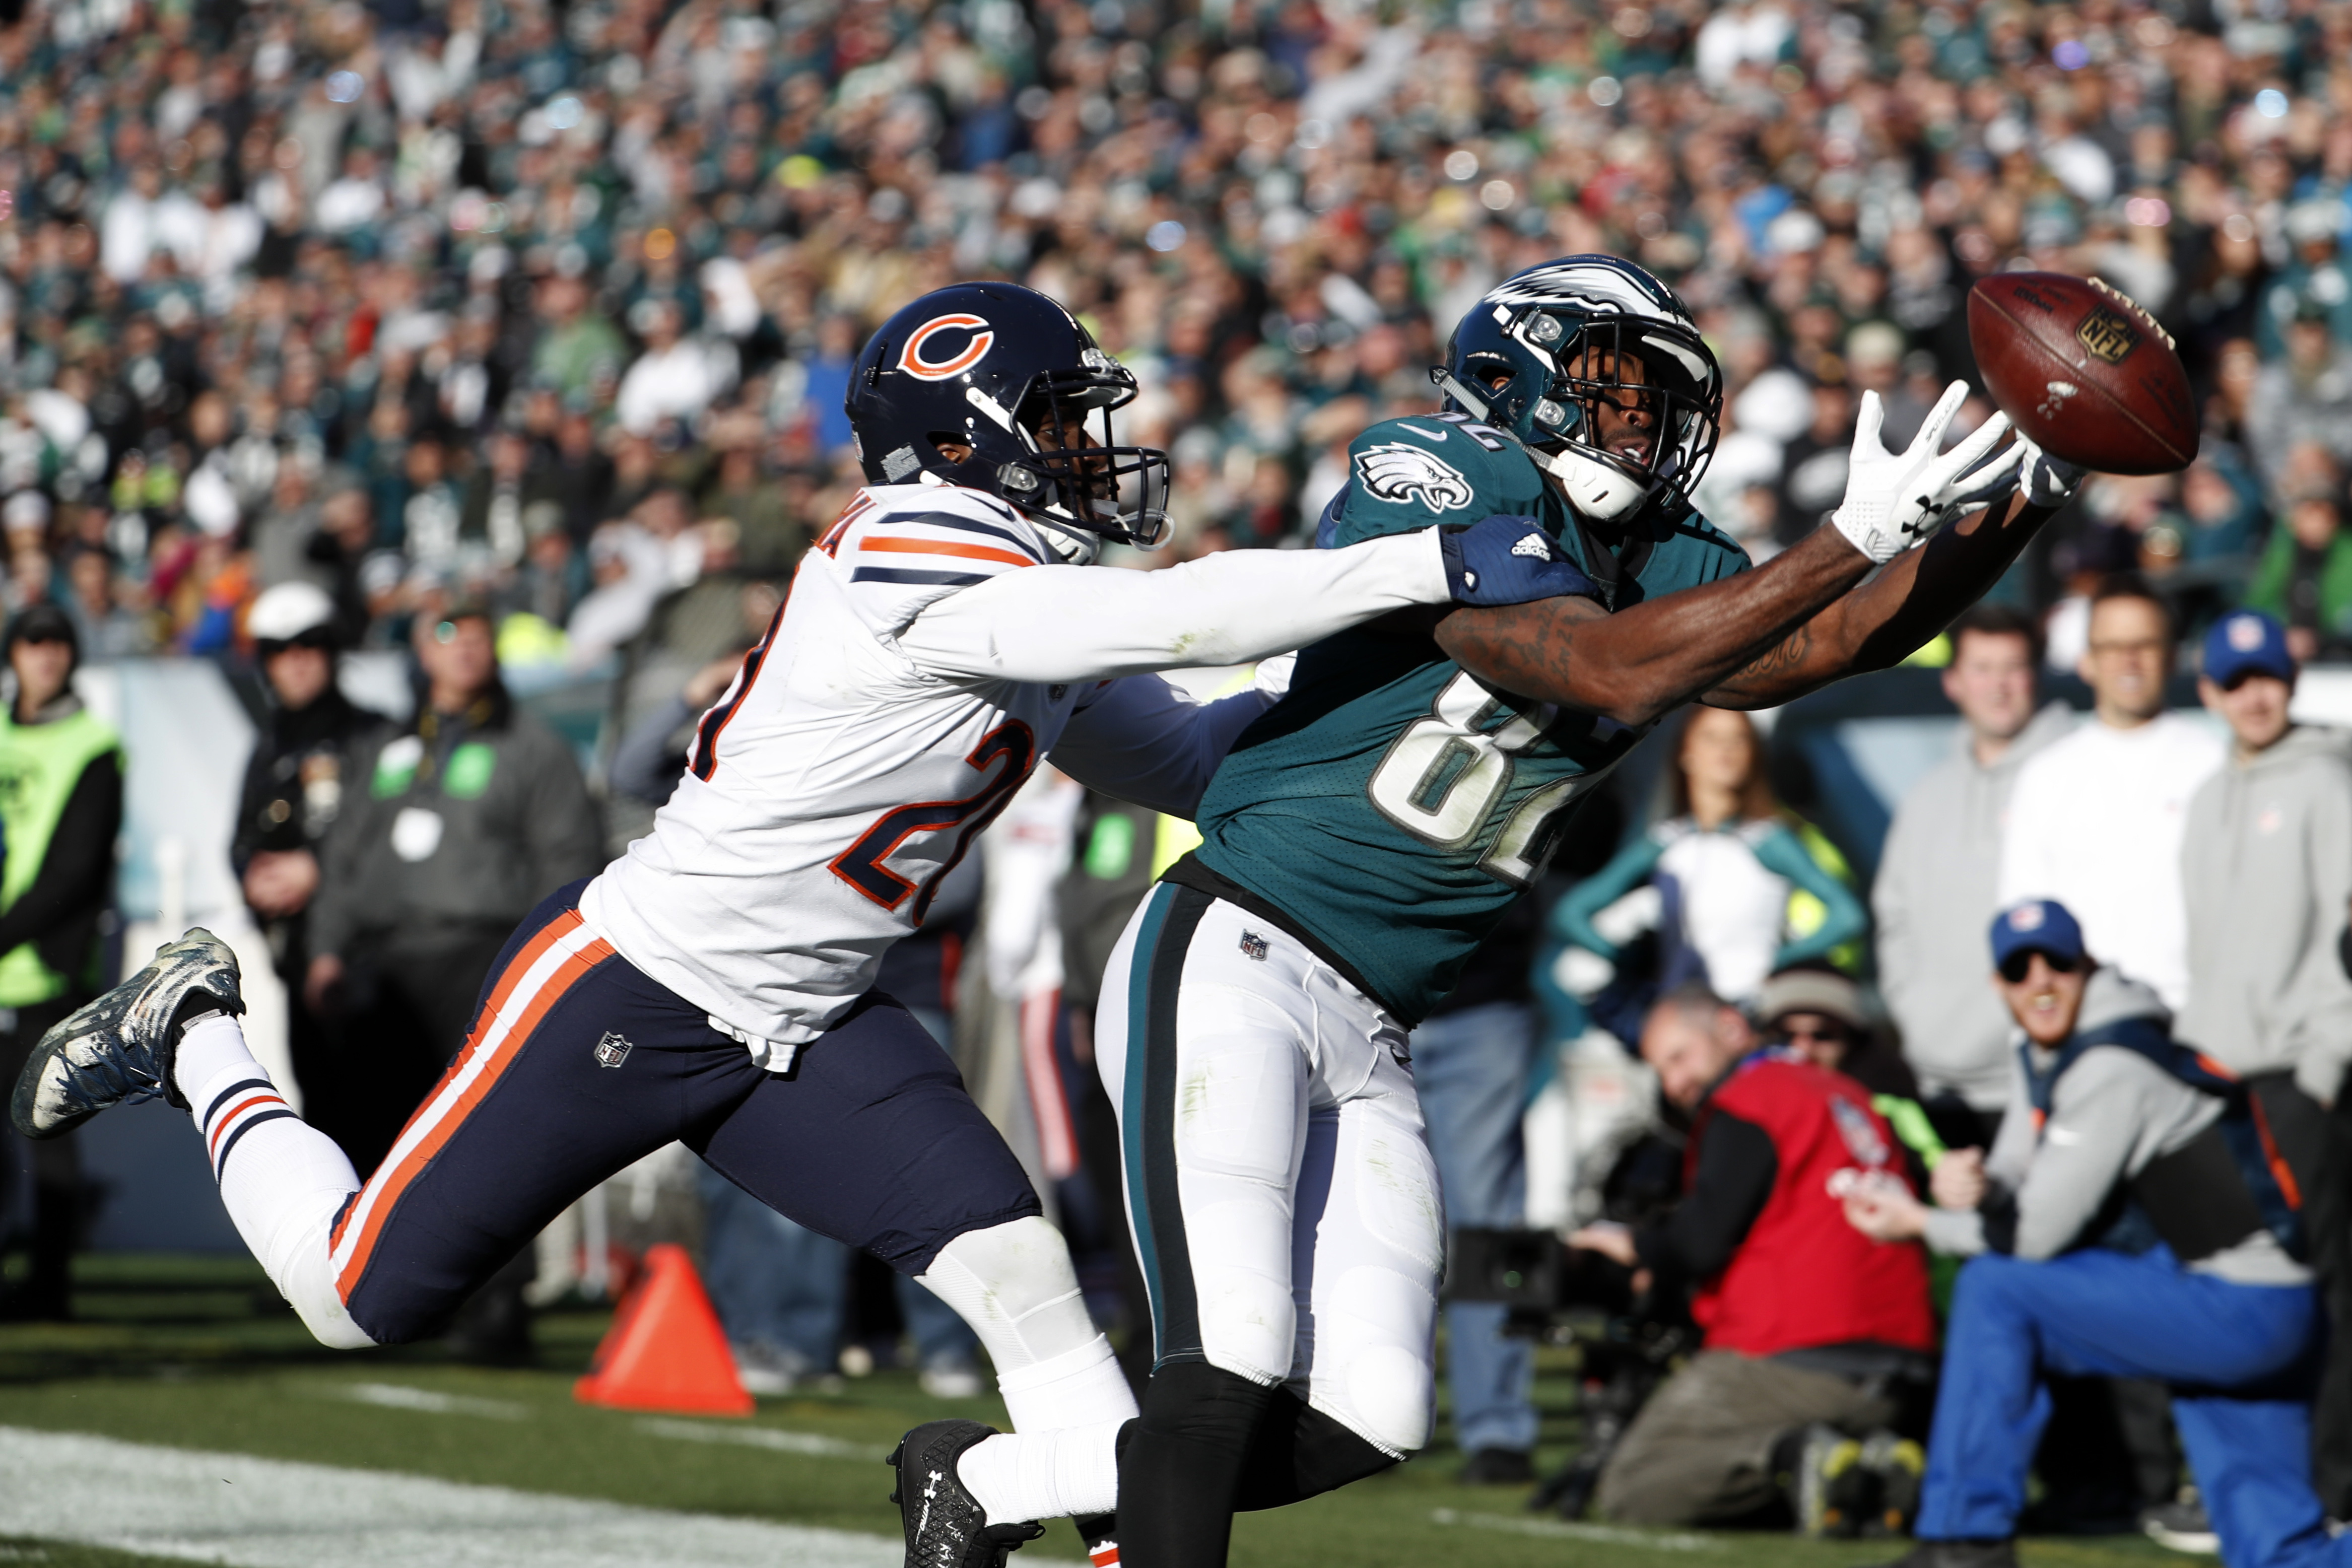 Torrey Smith cannot make this catch against the Bears. He leads the Eagles in drops.